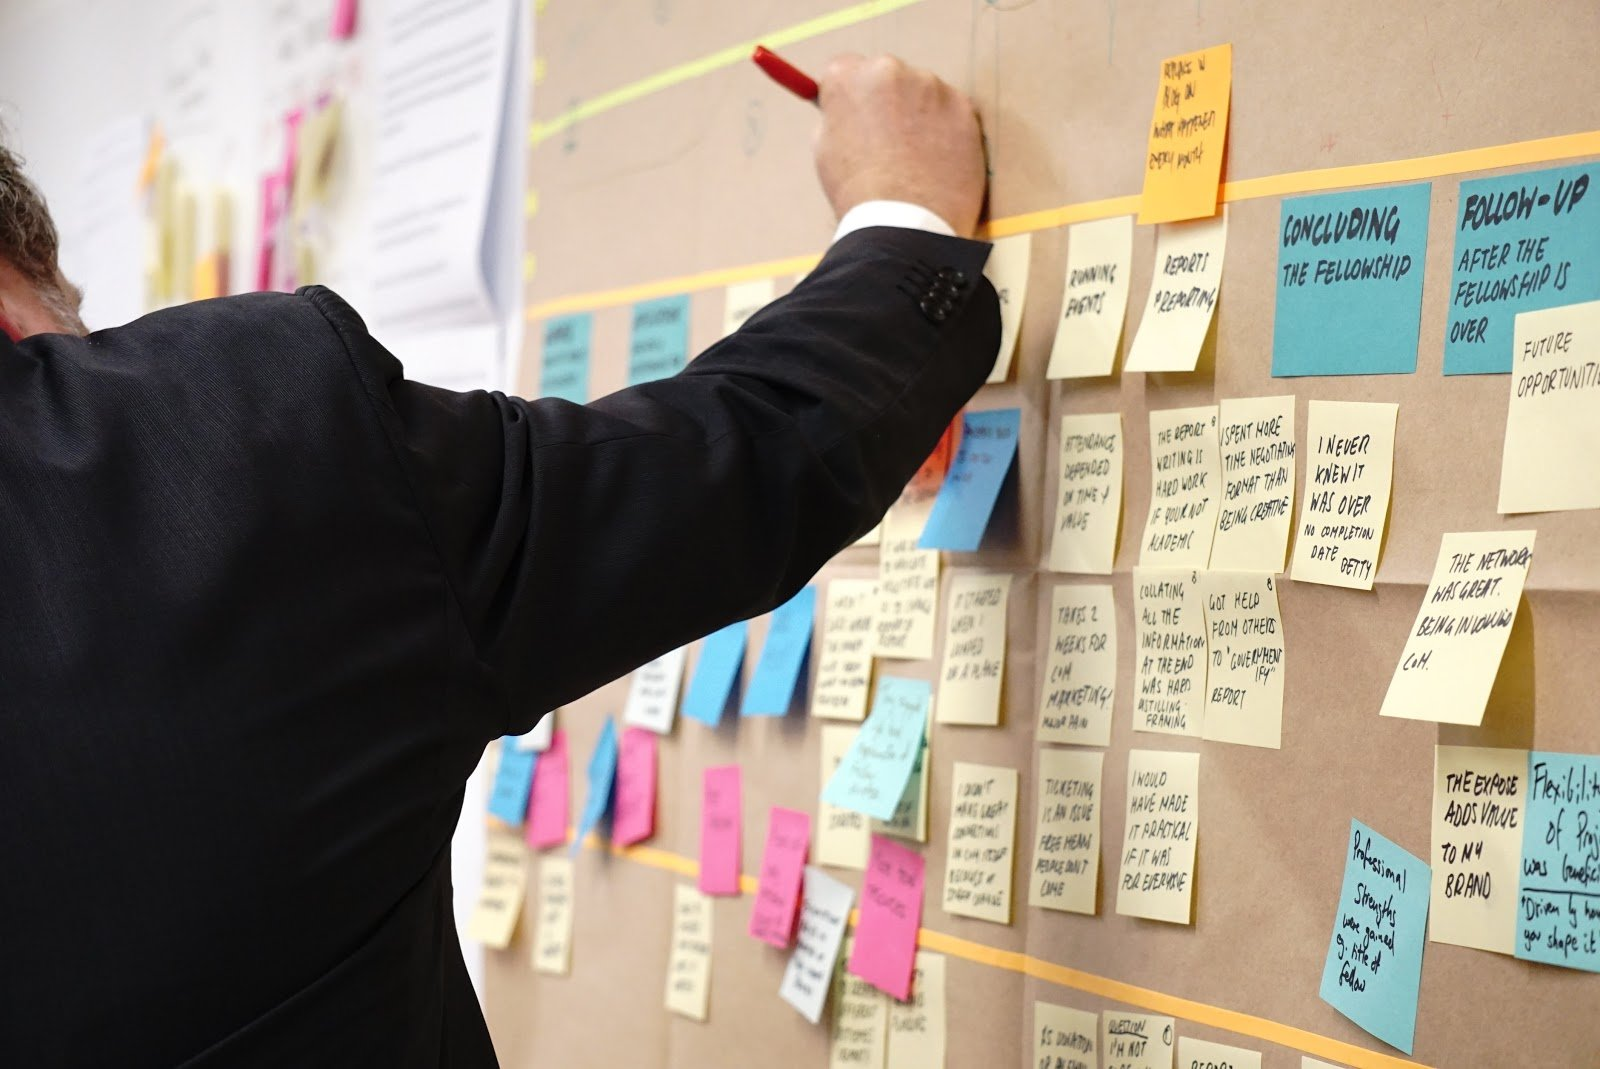 The Best Project Management Practices to Grow Your Business in an Efficient & Organized Way